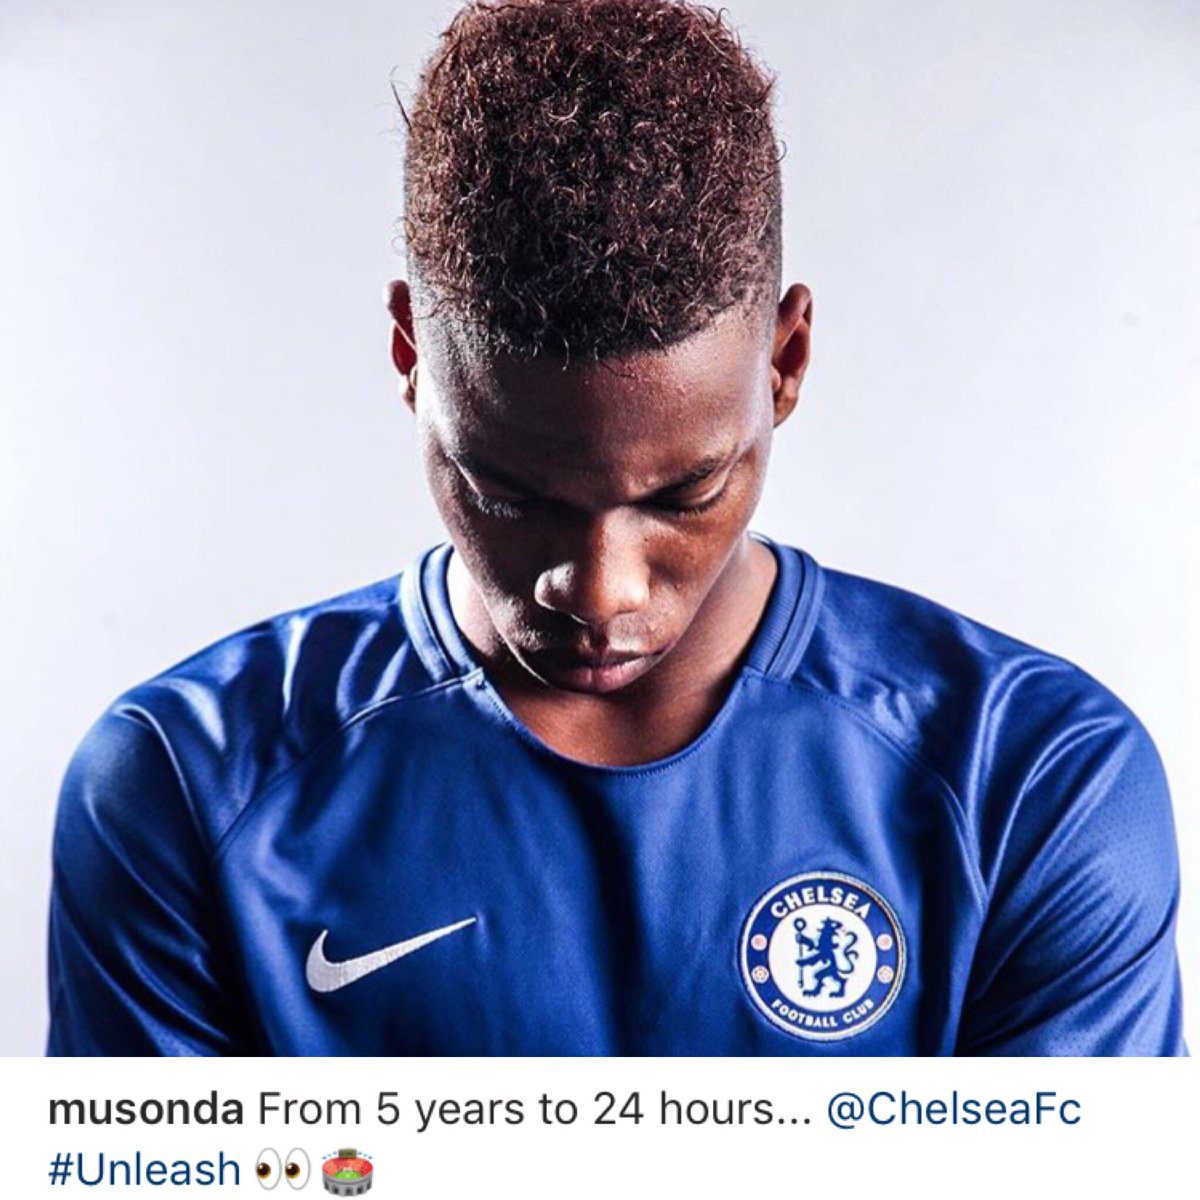 This man is ready for his first Chelsea start. Charly Musonda has been waiting for this a chance a long time.  https:// m.hln.be/sport/voetbal/ buitenlands-voetbal/er-is-er-een-dolblij-musonda-krijgt-eerste-basisplaats-bij-chelsea~abfb47b1/ &nbsp; …  #cfc <br>http://pic.twitter.com/AVaZcKUcAJ